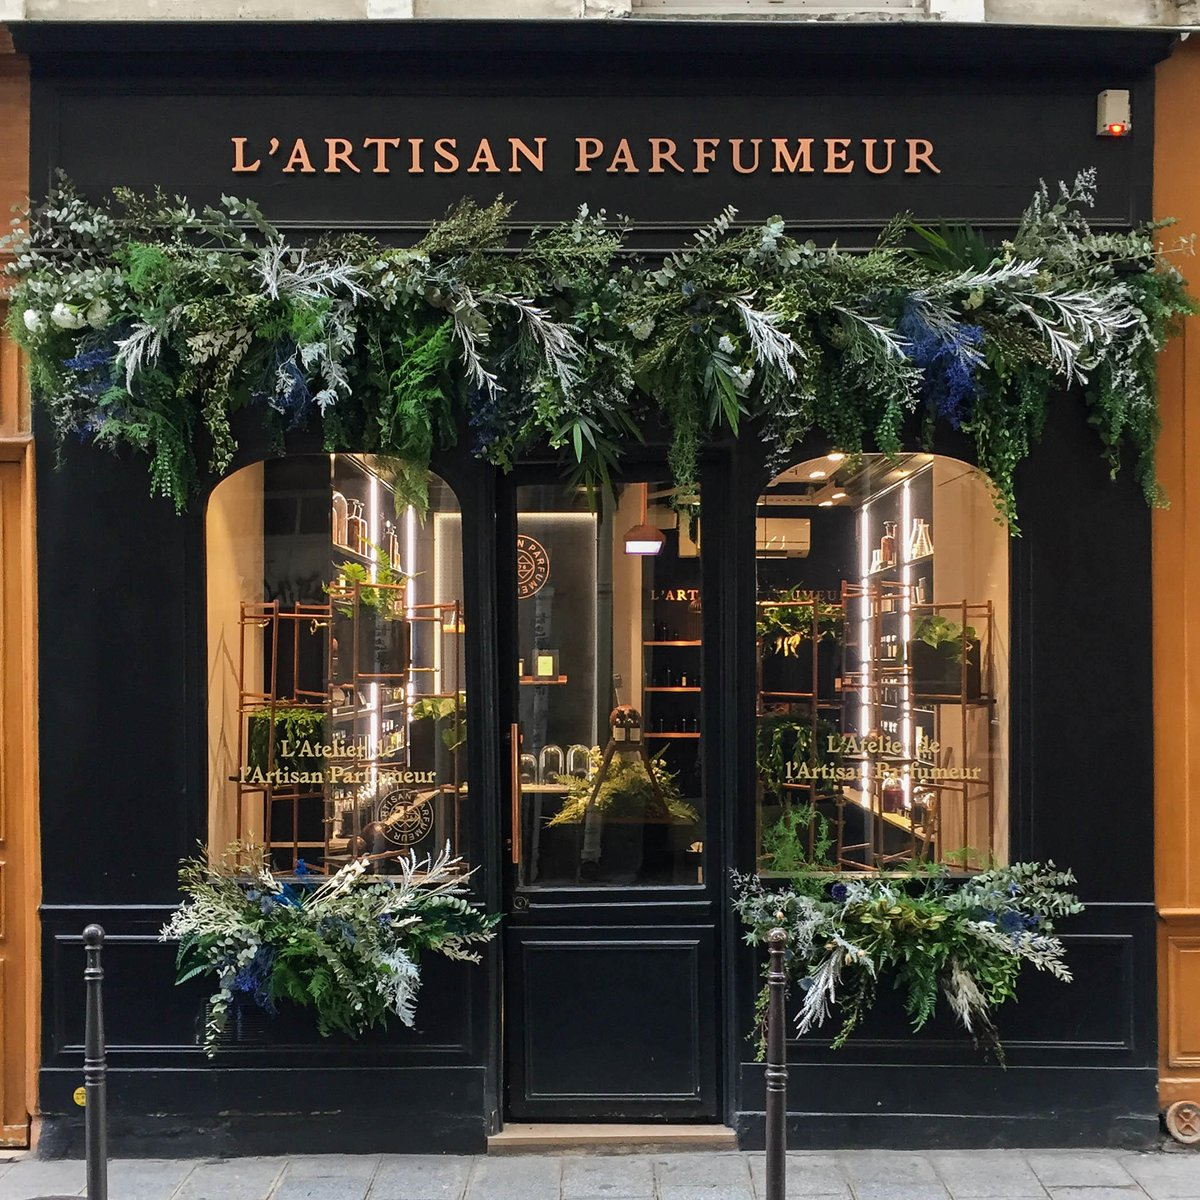 L'Artisan Parfumeur invites you to discover the wonders of nature inside its boutiques, and transport you into a world rich in French craftsmanship. #lartisanparfumeur https://t.co/OryAuuJZHF